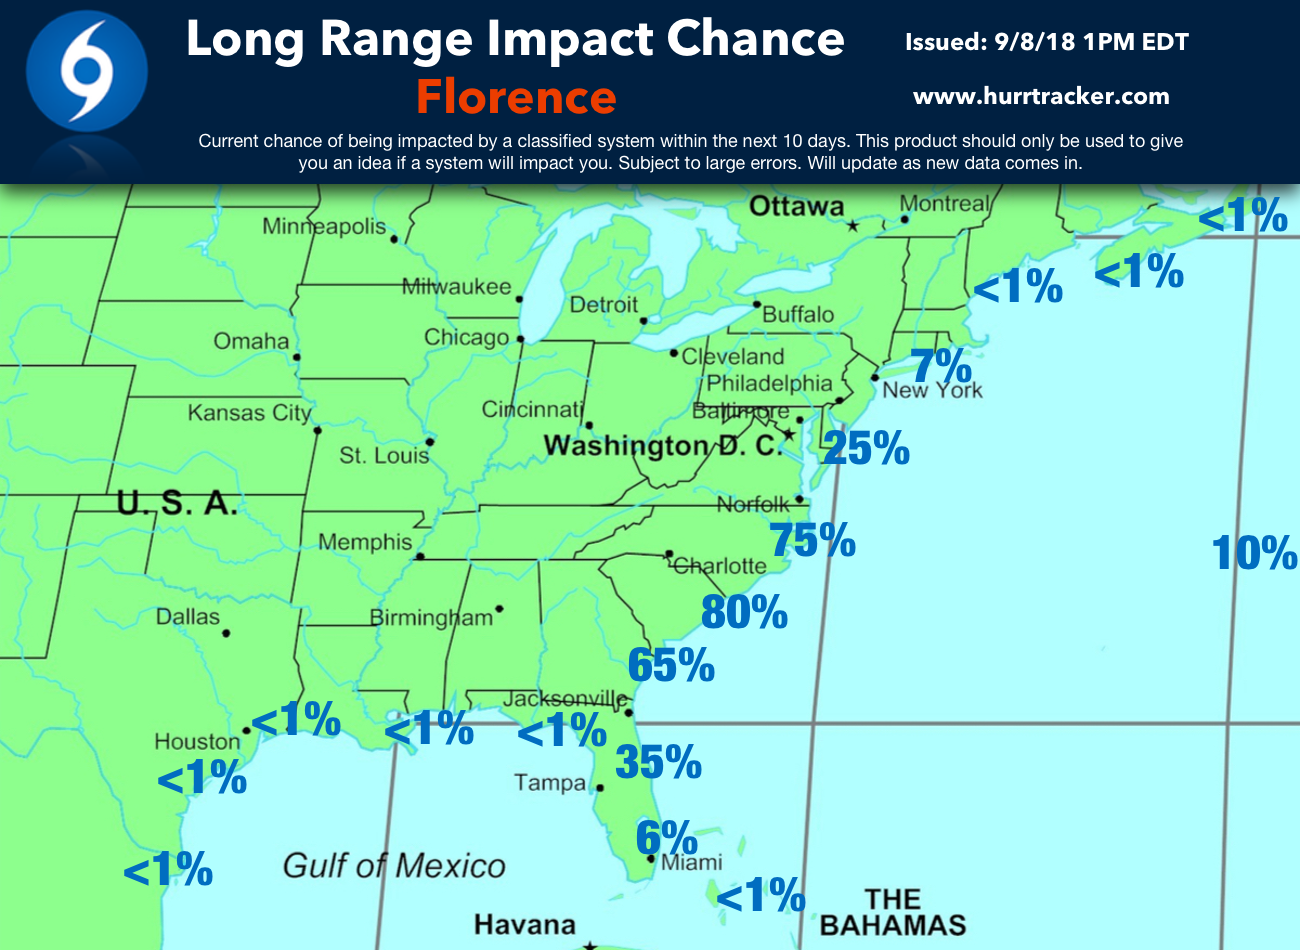 Our latest impact chance graphic.